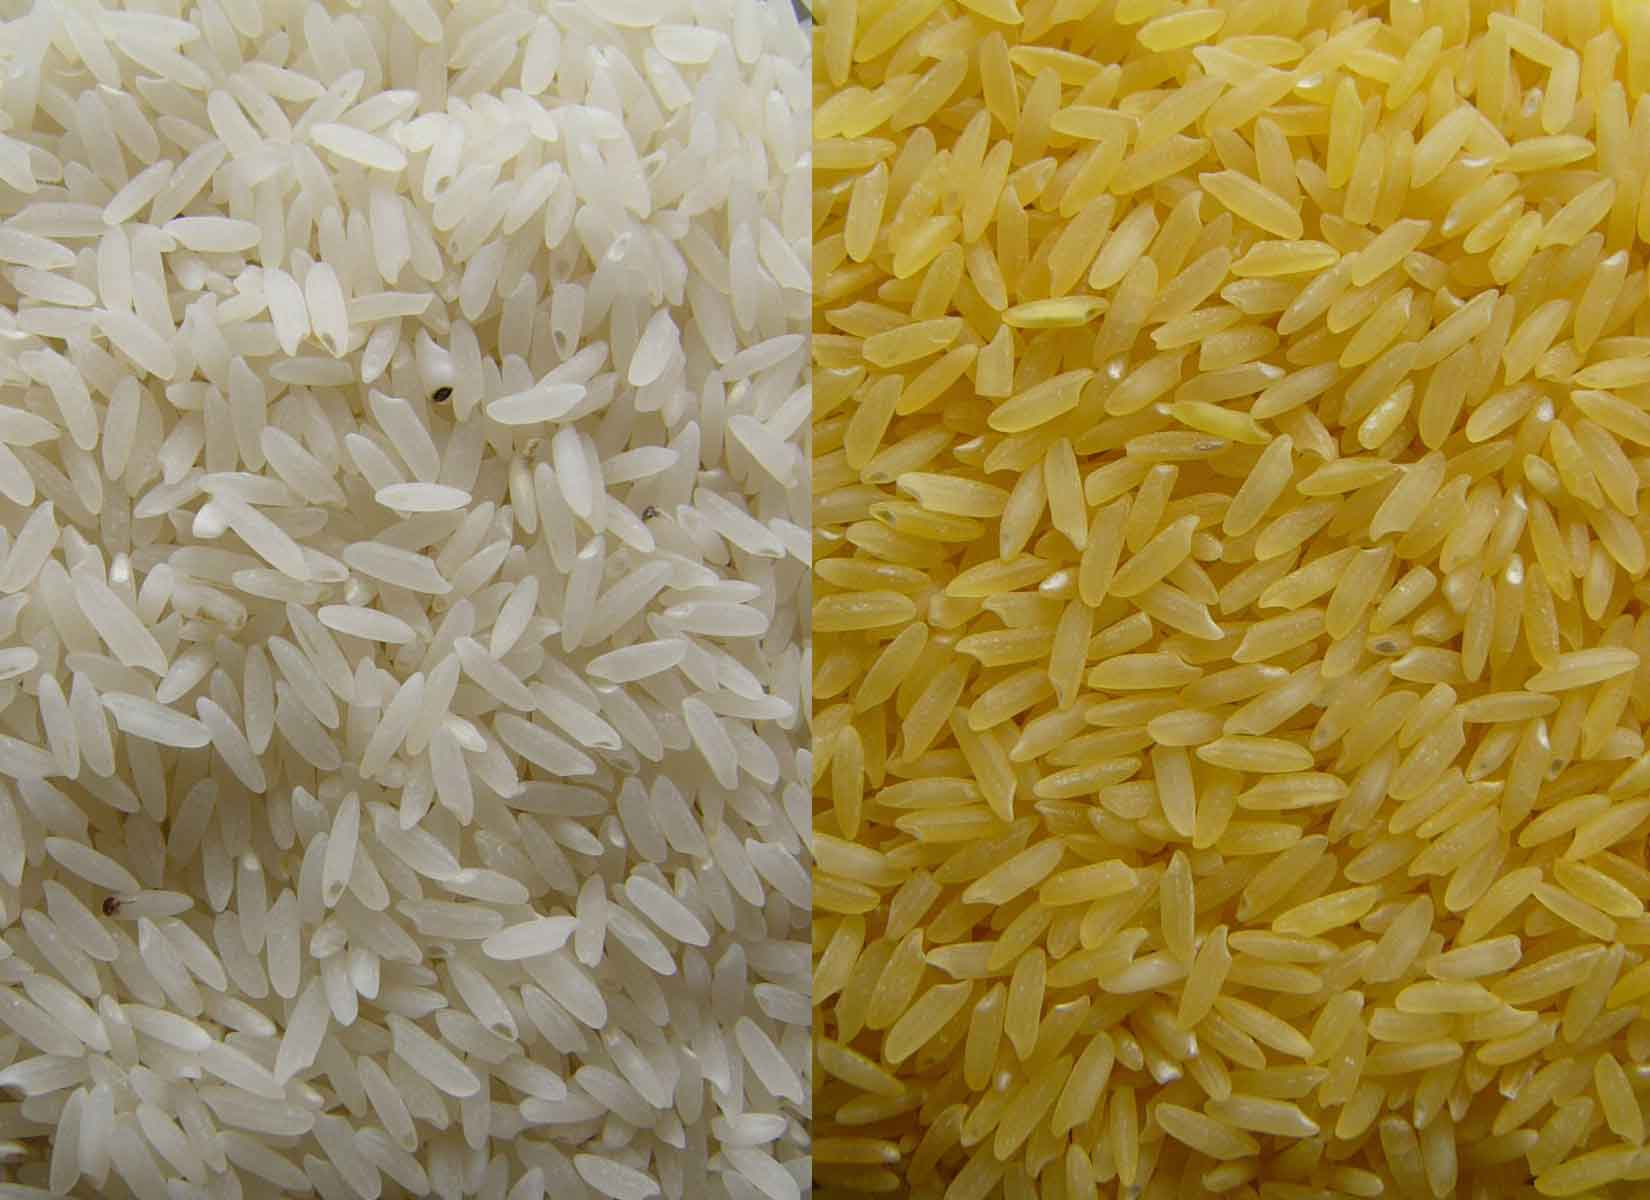 Biofortified Golden Rice